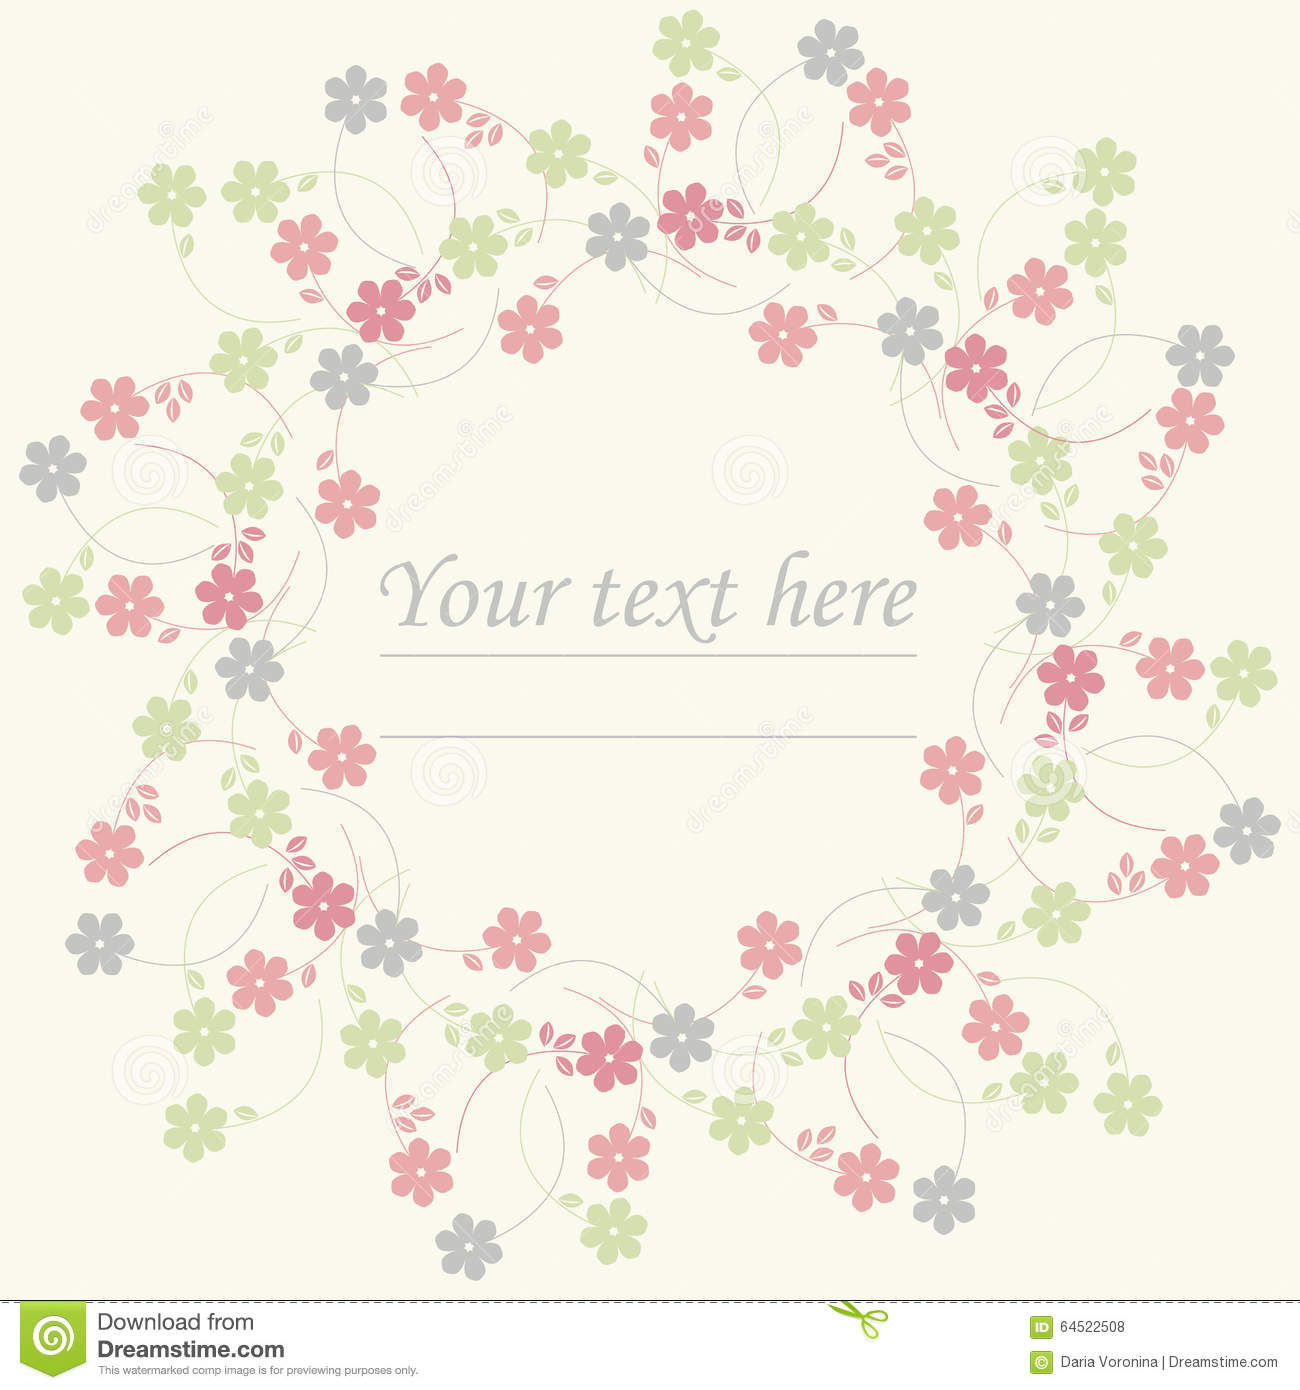 Circle Frame With Cute Spring Flowers Illustration 64522508 Megapixl